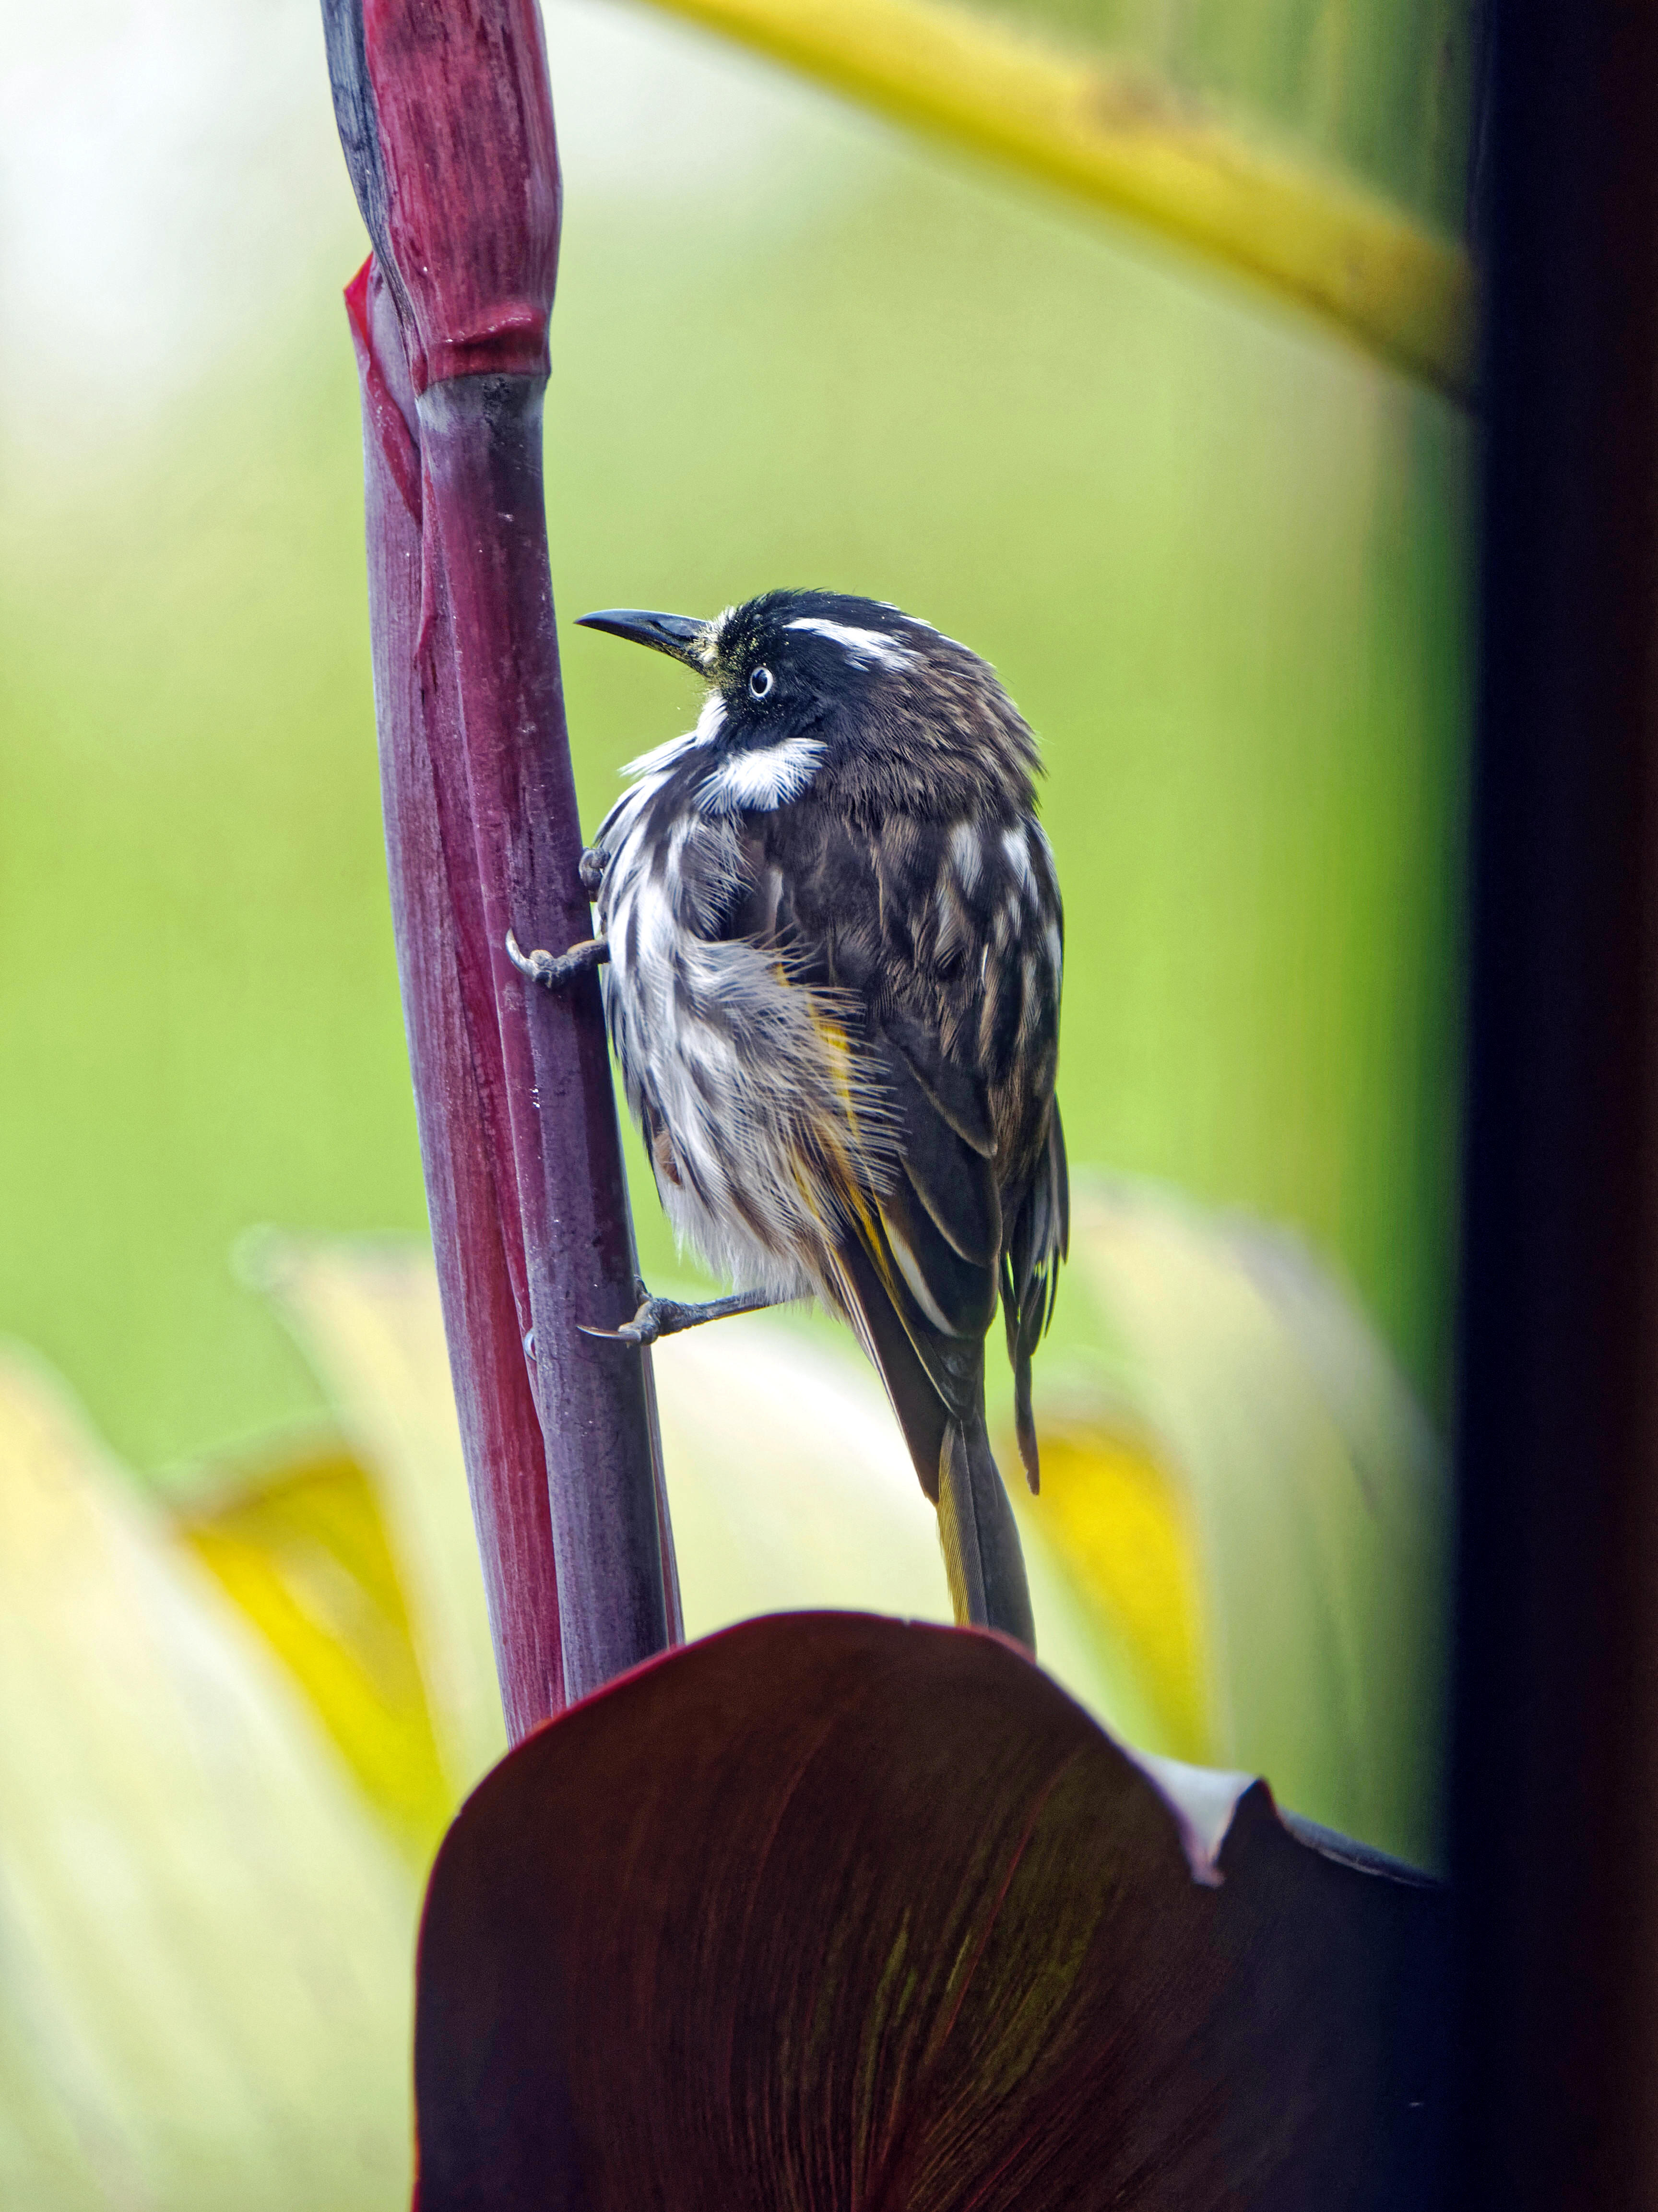 This should be Honeyeater-7.jpeg.  Is it missing?